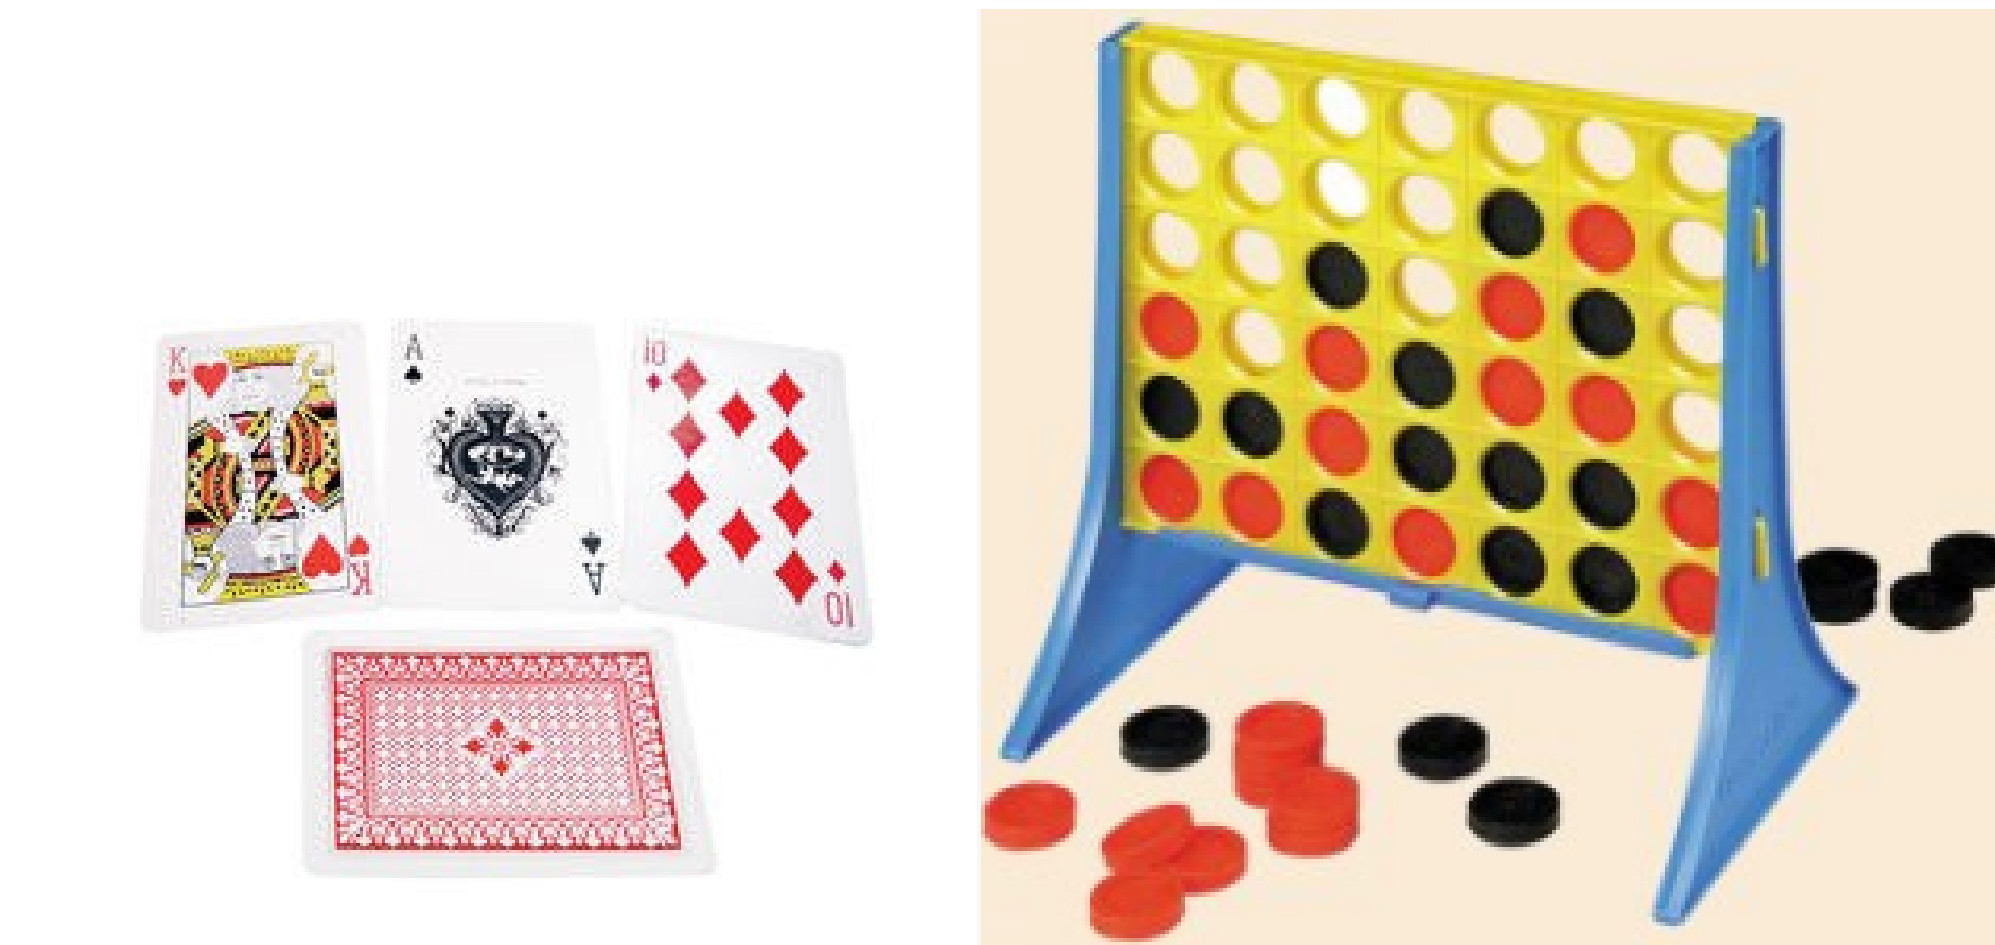 brailled playing cards, tactile connect four